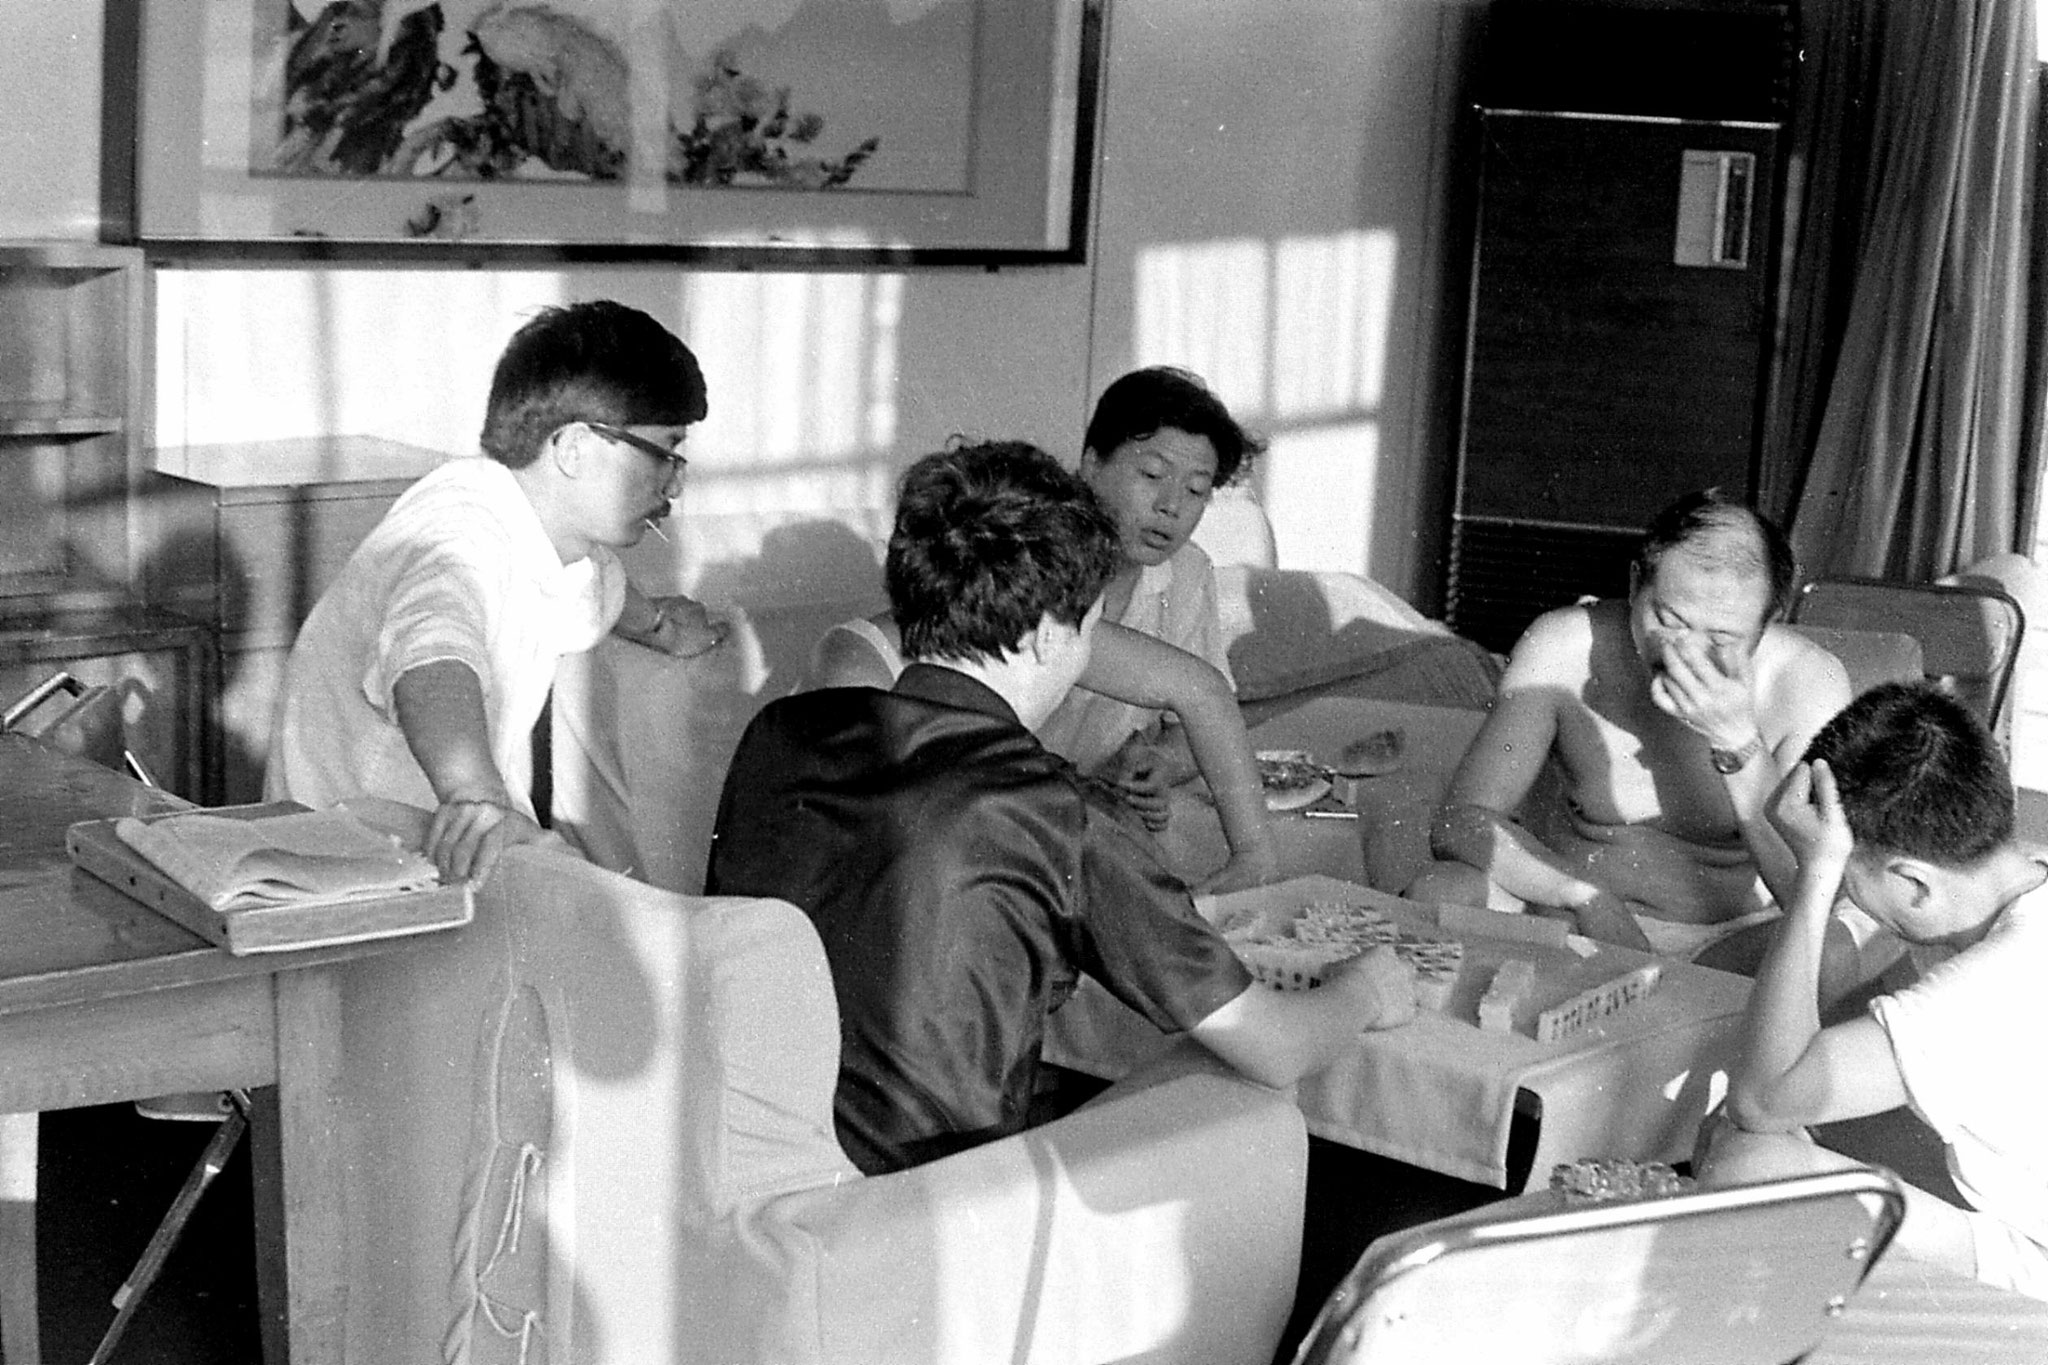 10/8/1989: 21: 1925hrs Mah Jong players in 2nd class lounge